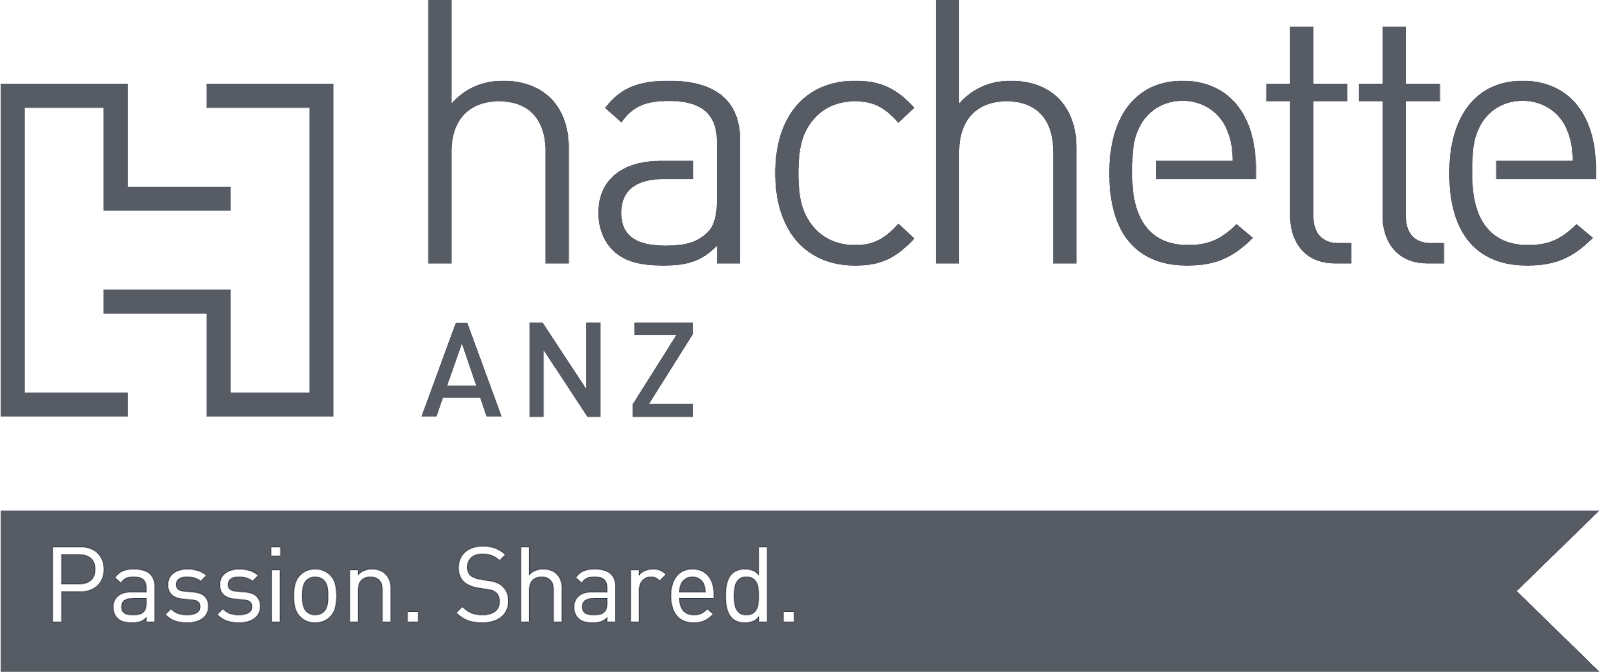 hachette_ANZ_PASSION_SHARED.PNG